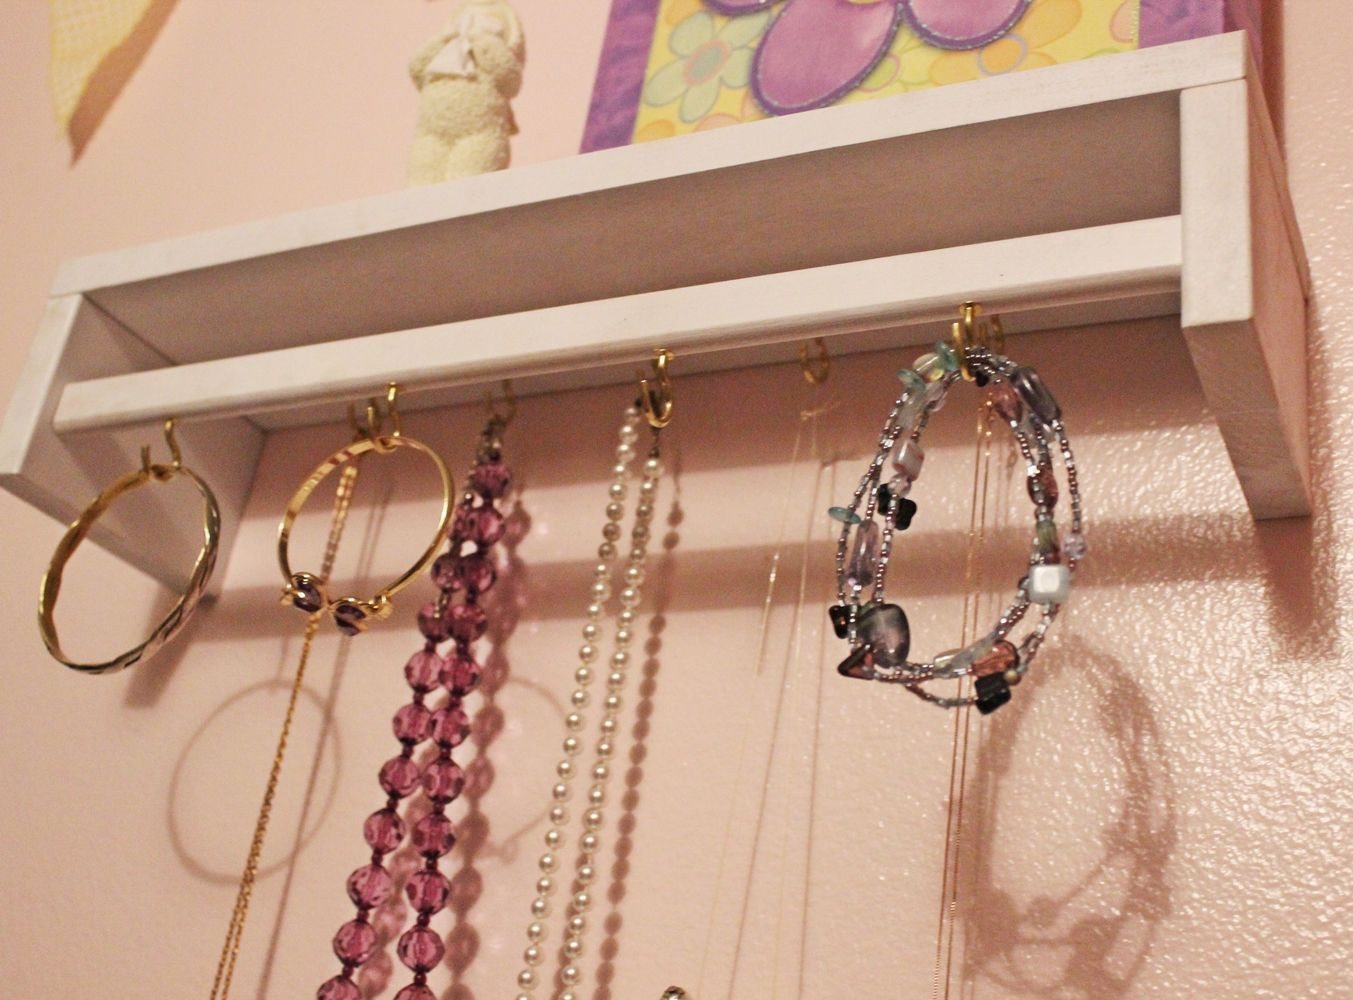 Best ideas about DIY Jewelry Rack . Save or Pin DIY Jewelry Holder out of Spice Rack IKEA Hack Now.